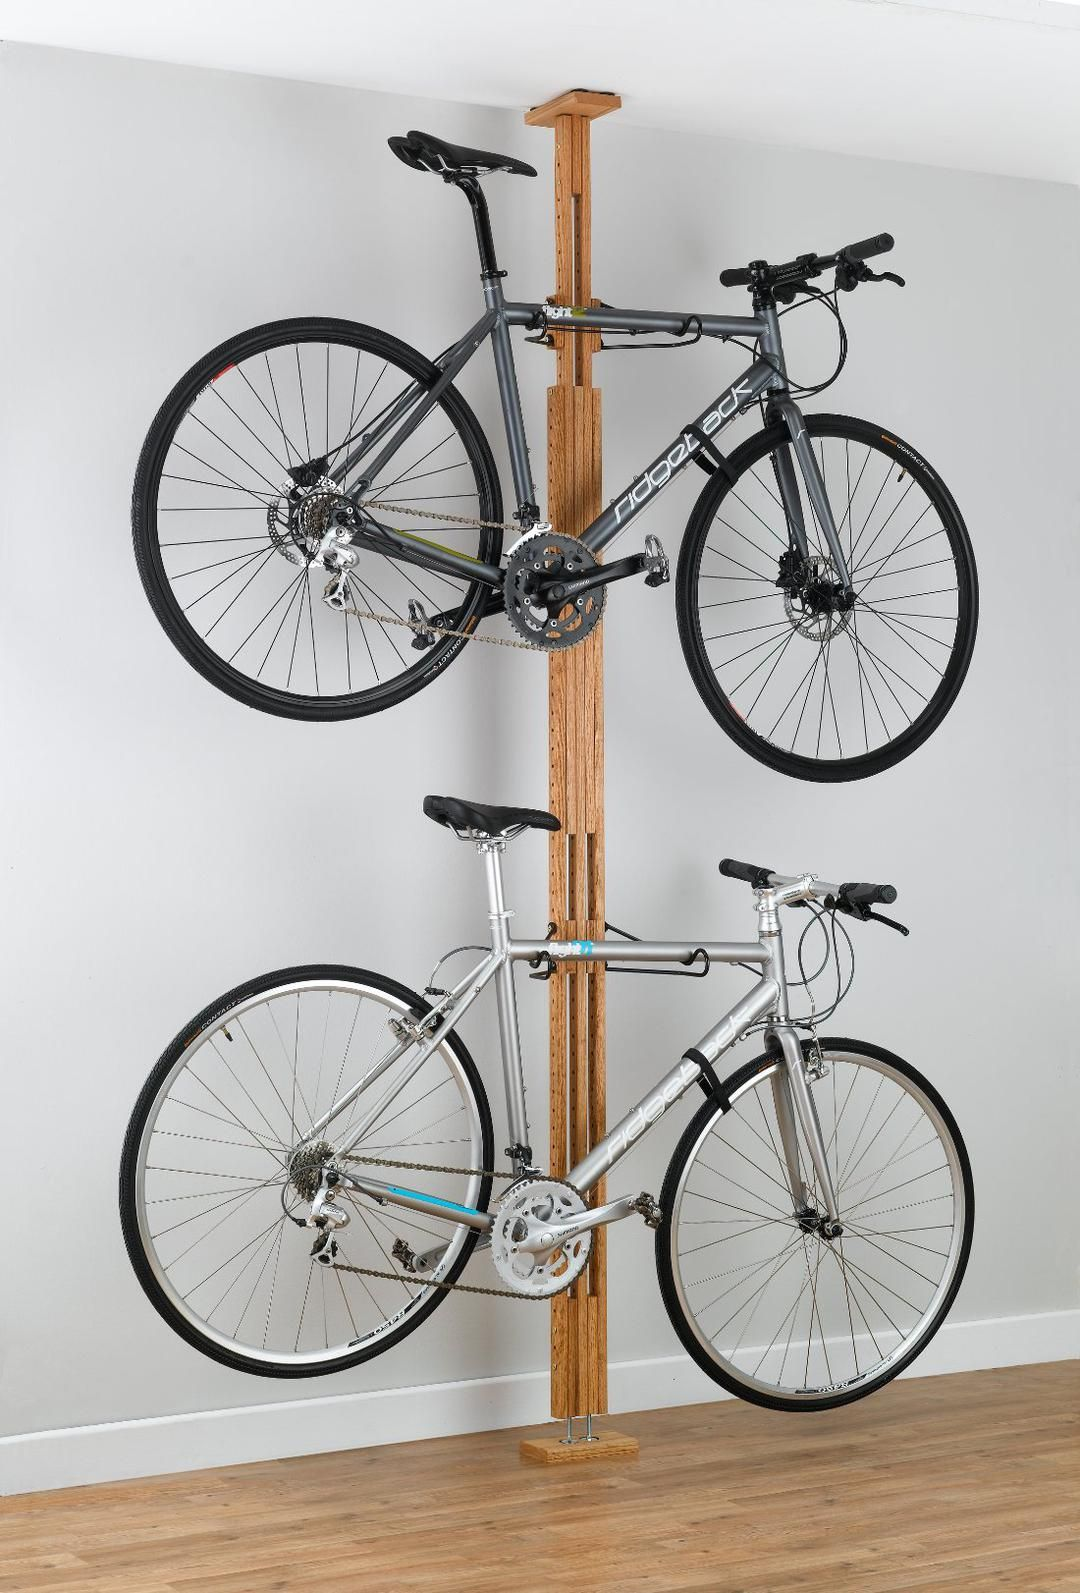 more solutions lifts bike garage and bag hoists racks pin canoe storage bicycle golf sports kayak family